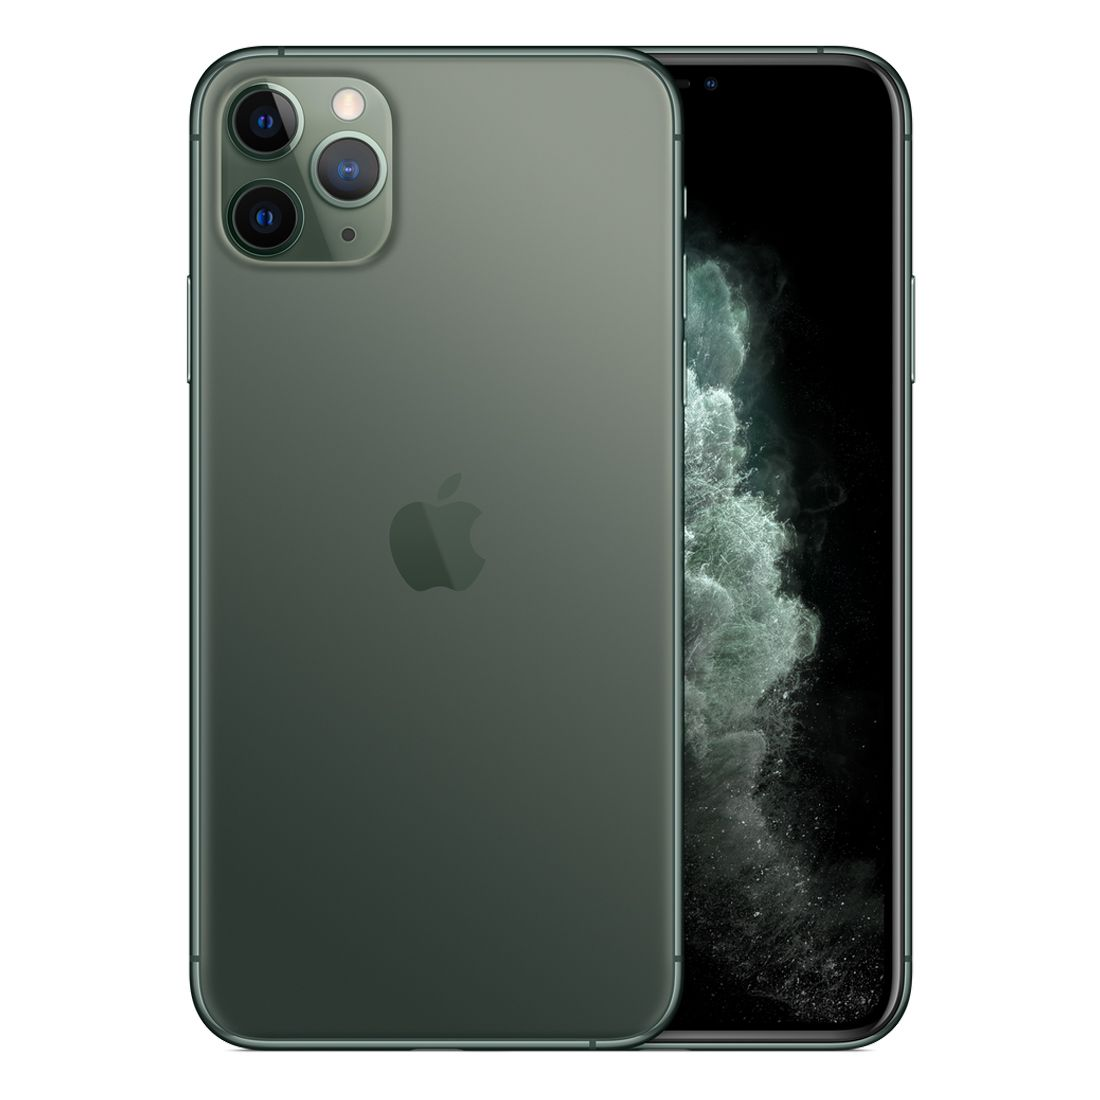 Apple iPhone 11 Pro Max 512GB - Midnight Green